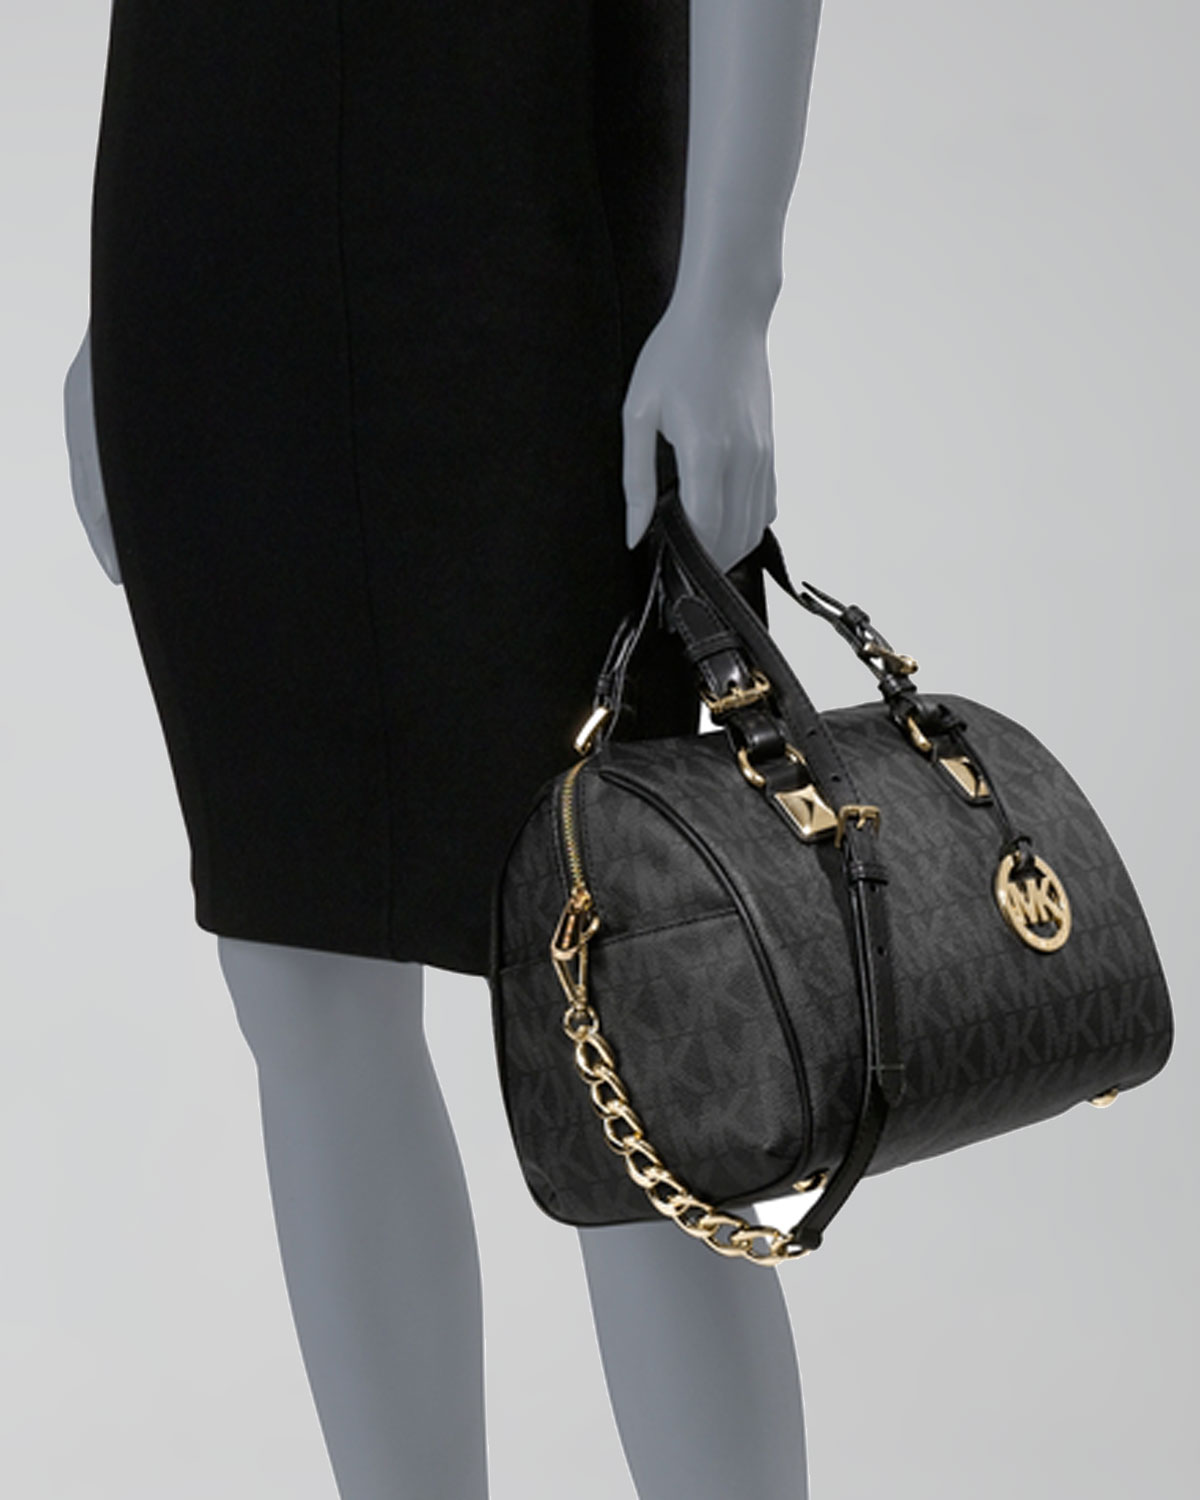 2a19e04c581f92 ... large converstible signature satchel brown 0aefe 47406; sweden gallery.  previously sold at neiman marcus womens michael kors grayson 5051a 0ae1a